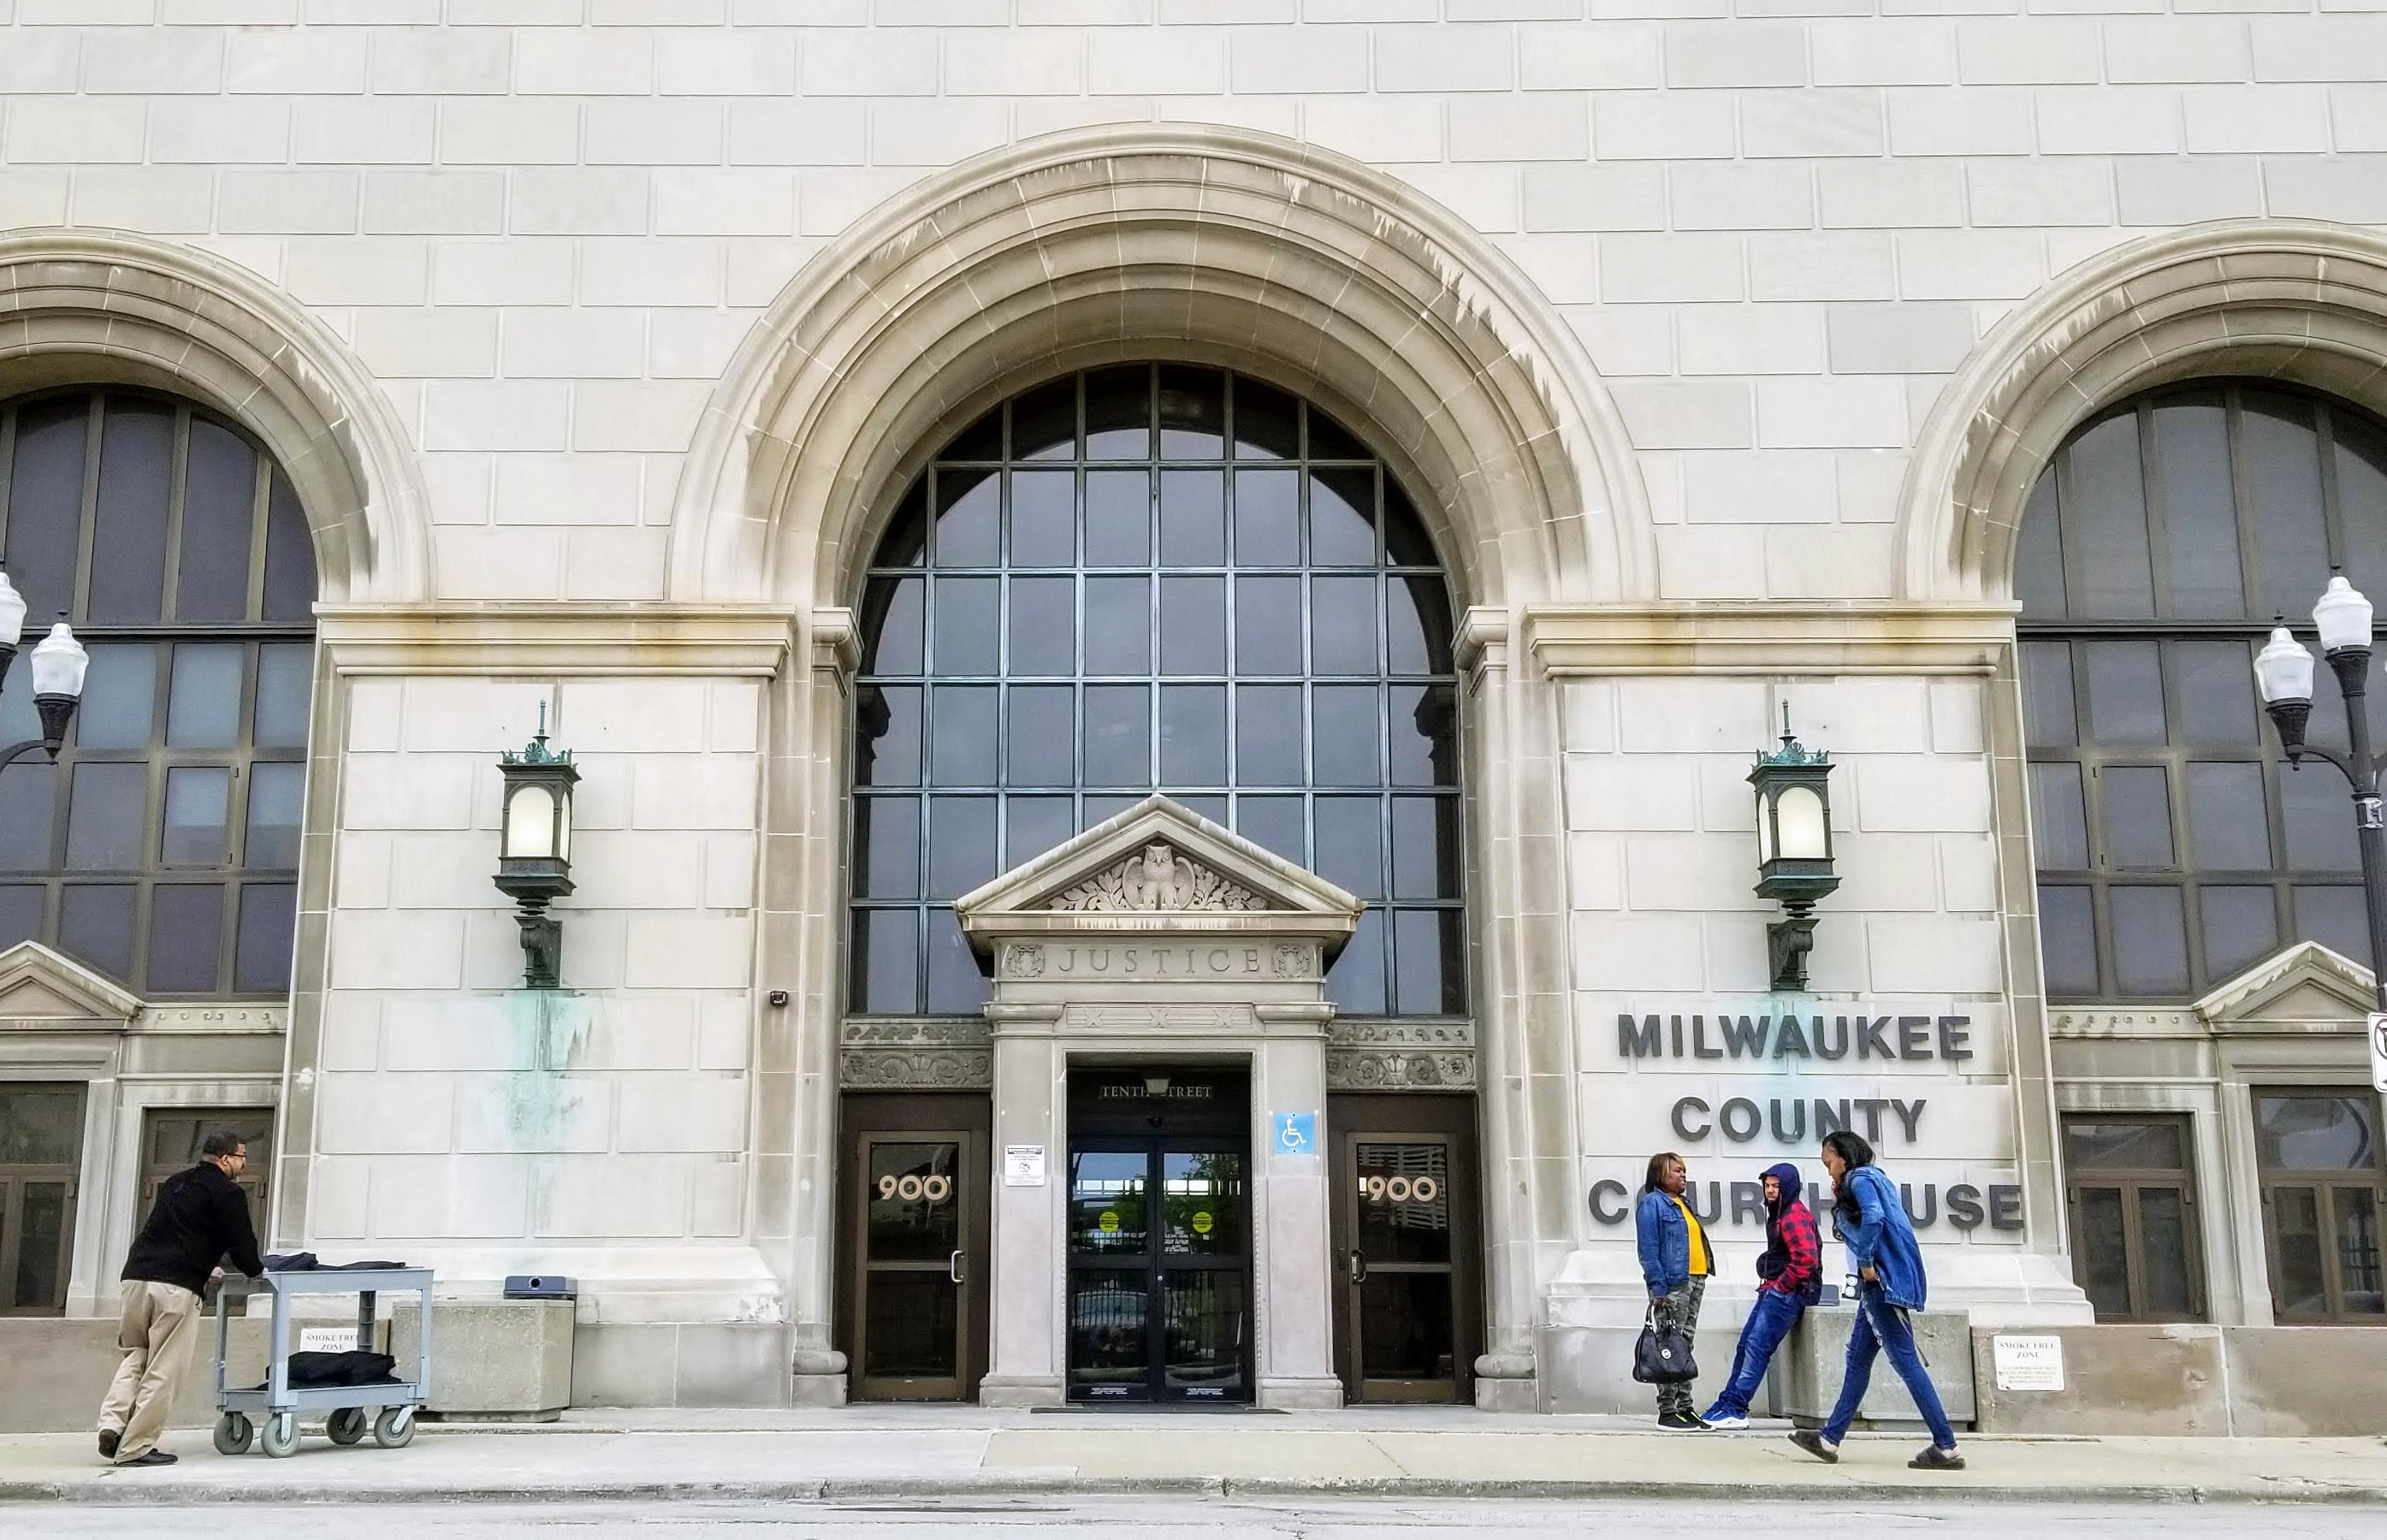 Milwaukee County Courthouse